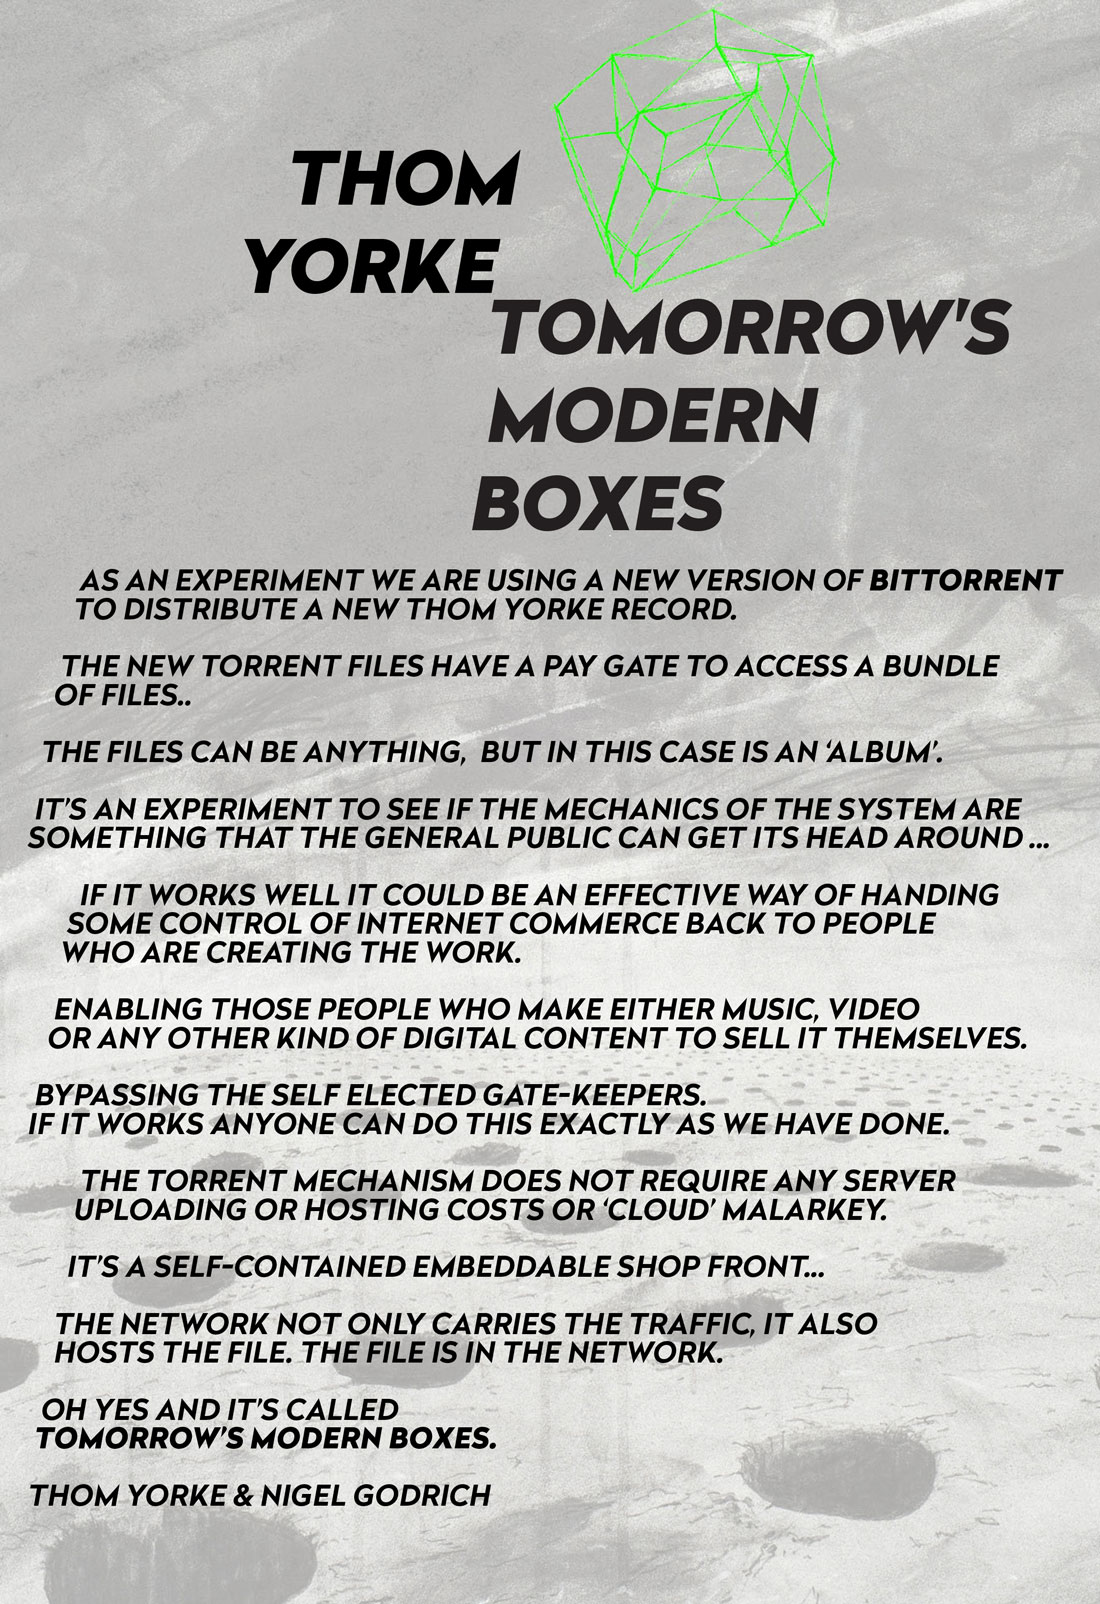 TomorrowsModernBoxes-blog